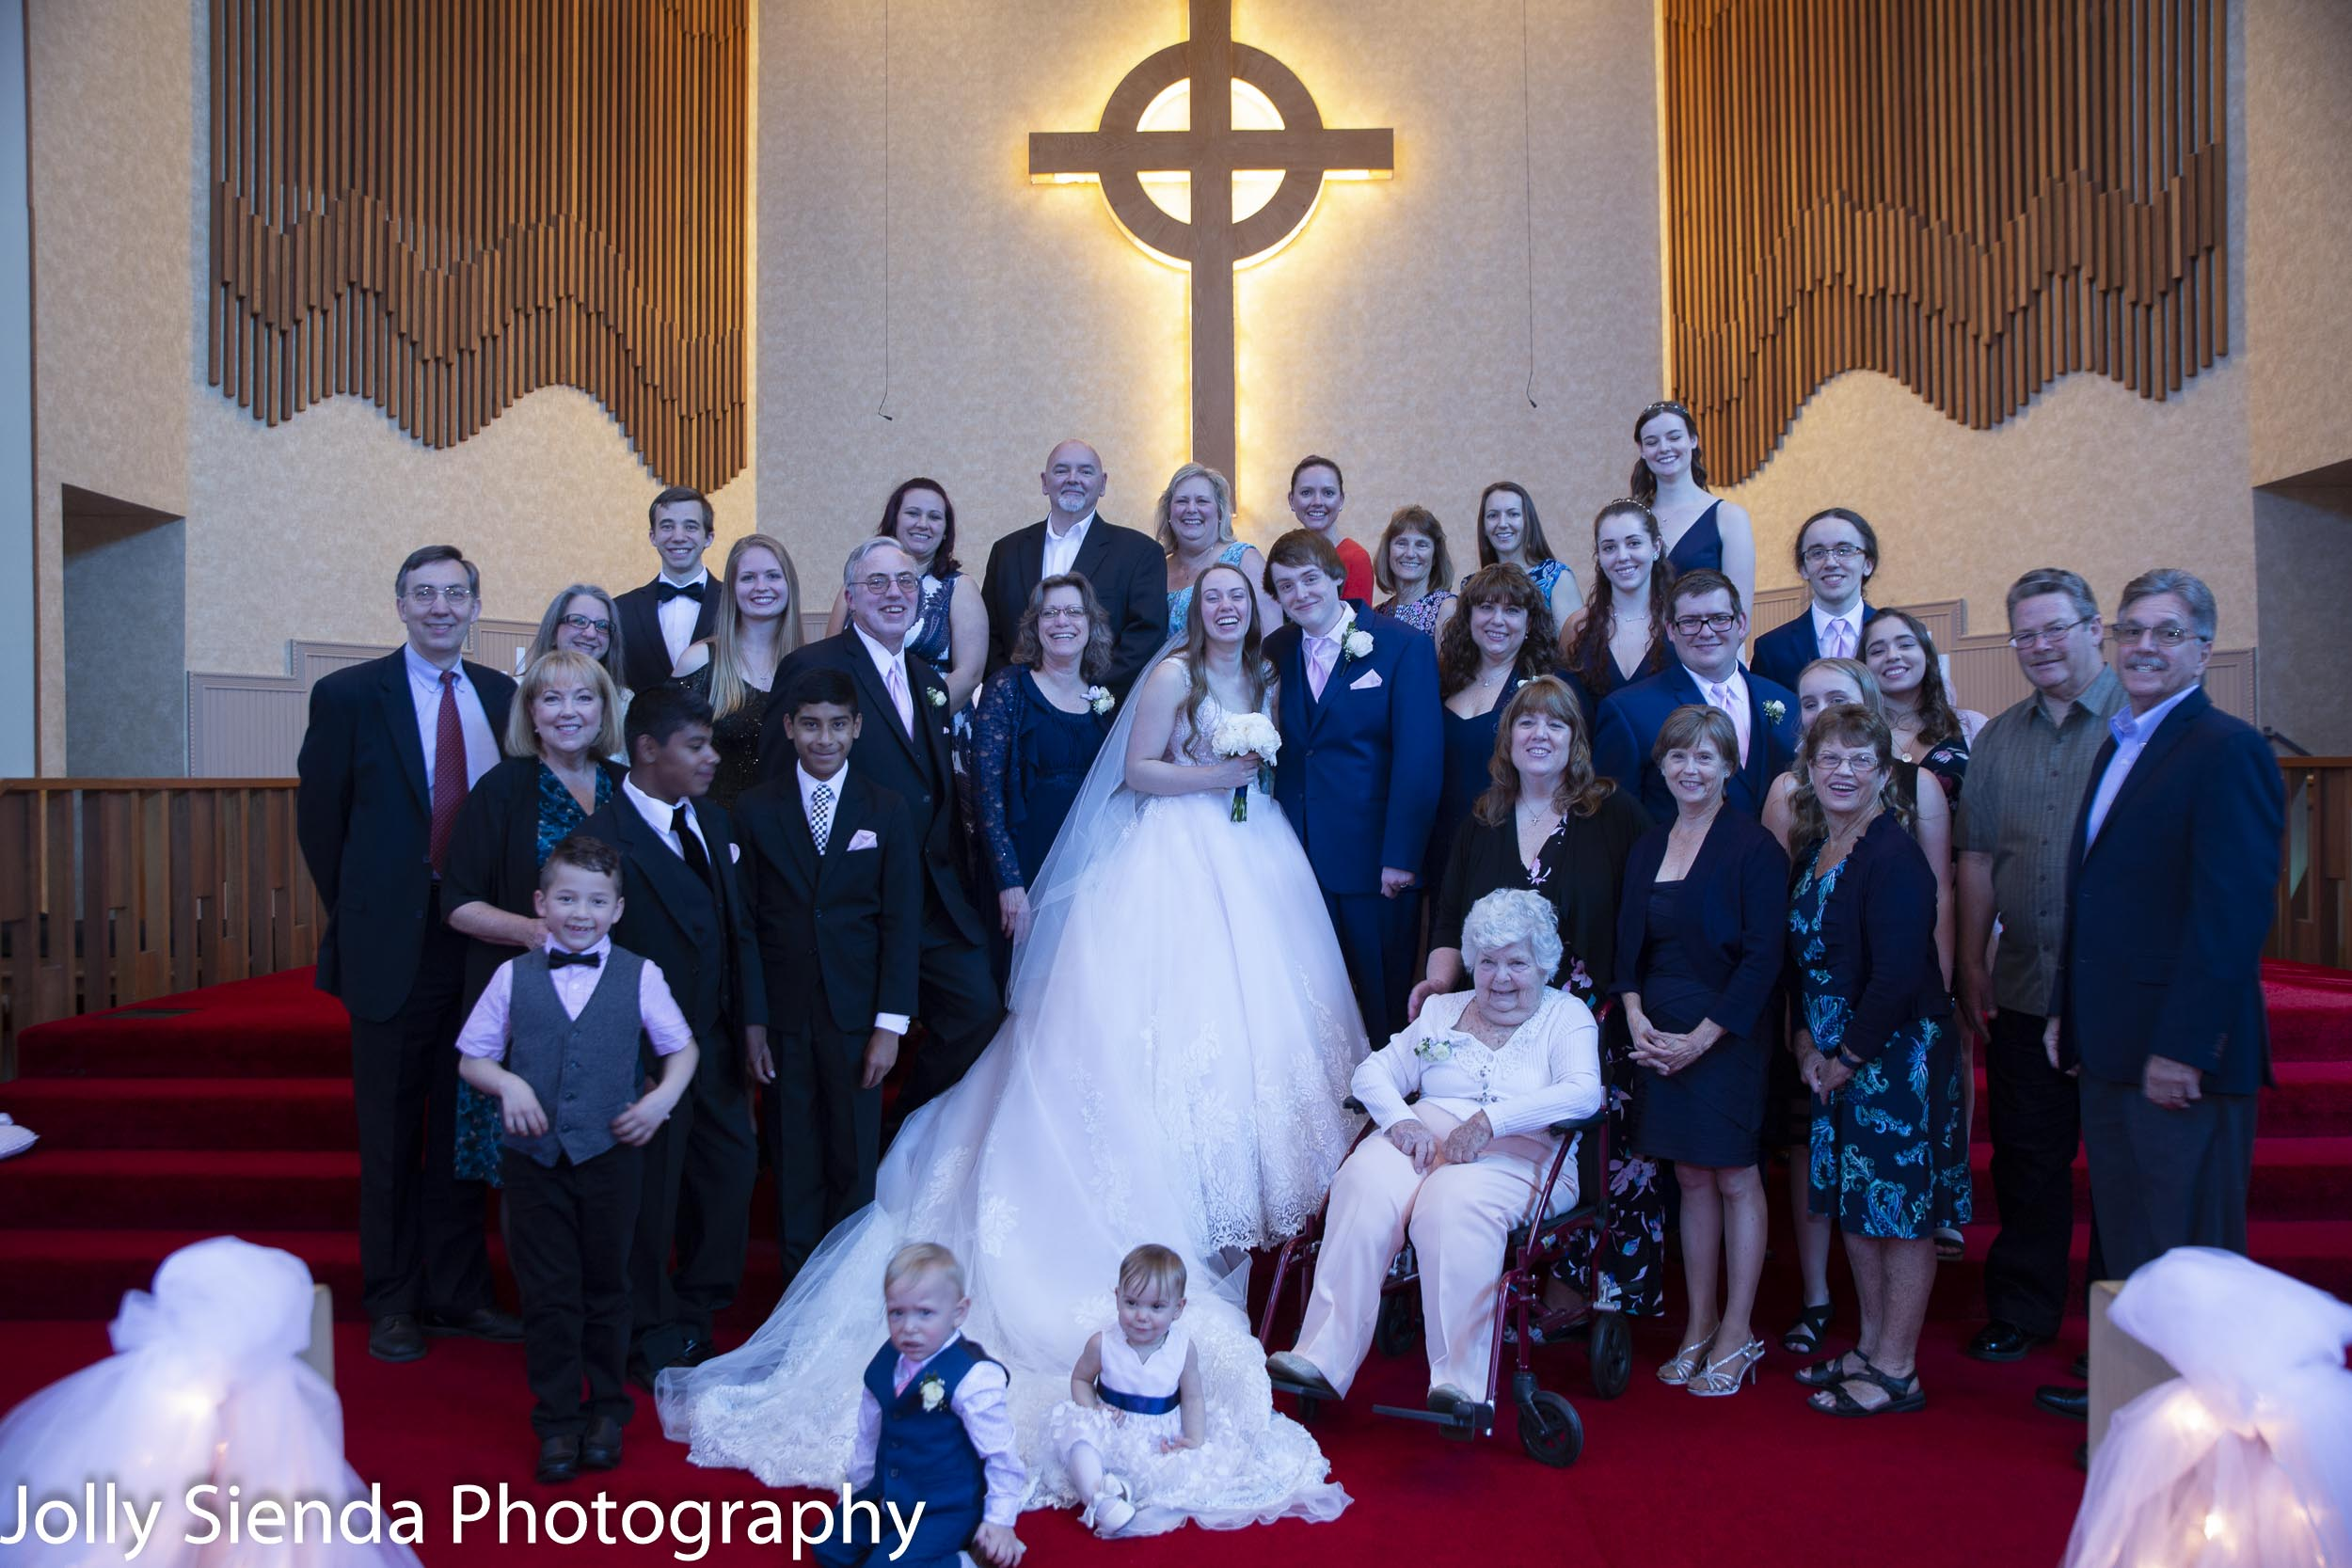 Family photograph of Lily and Aaron's wedding.